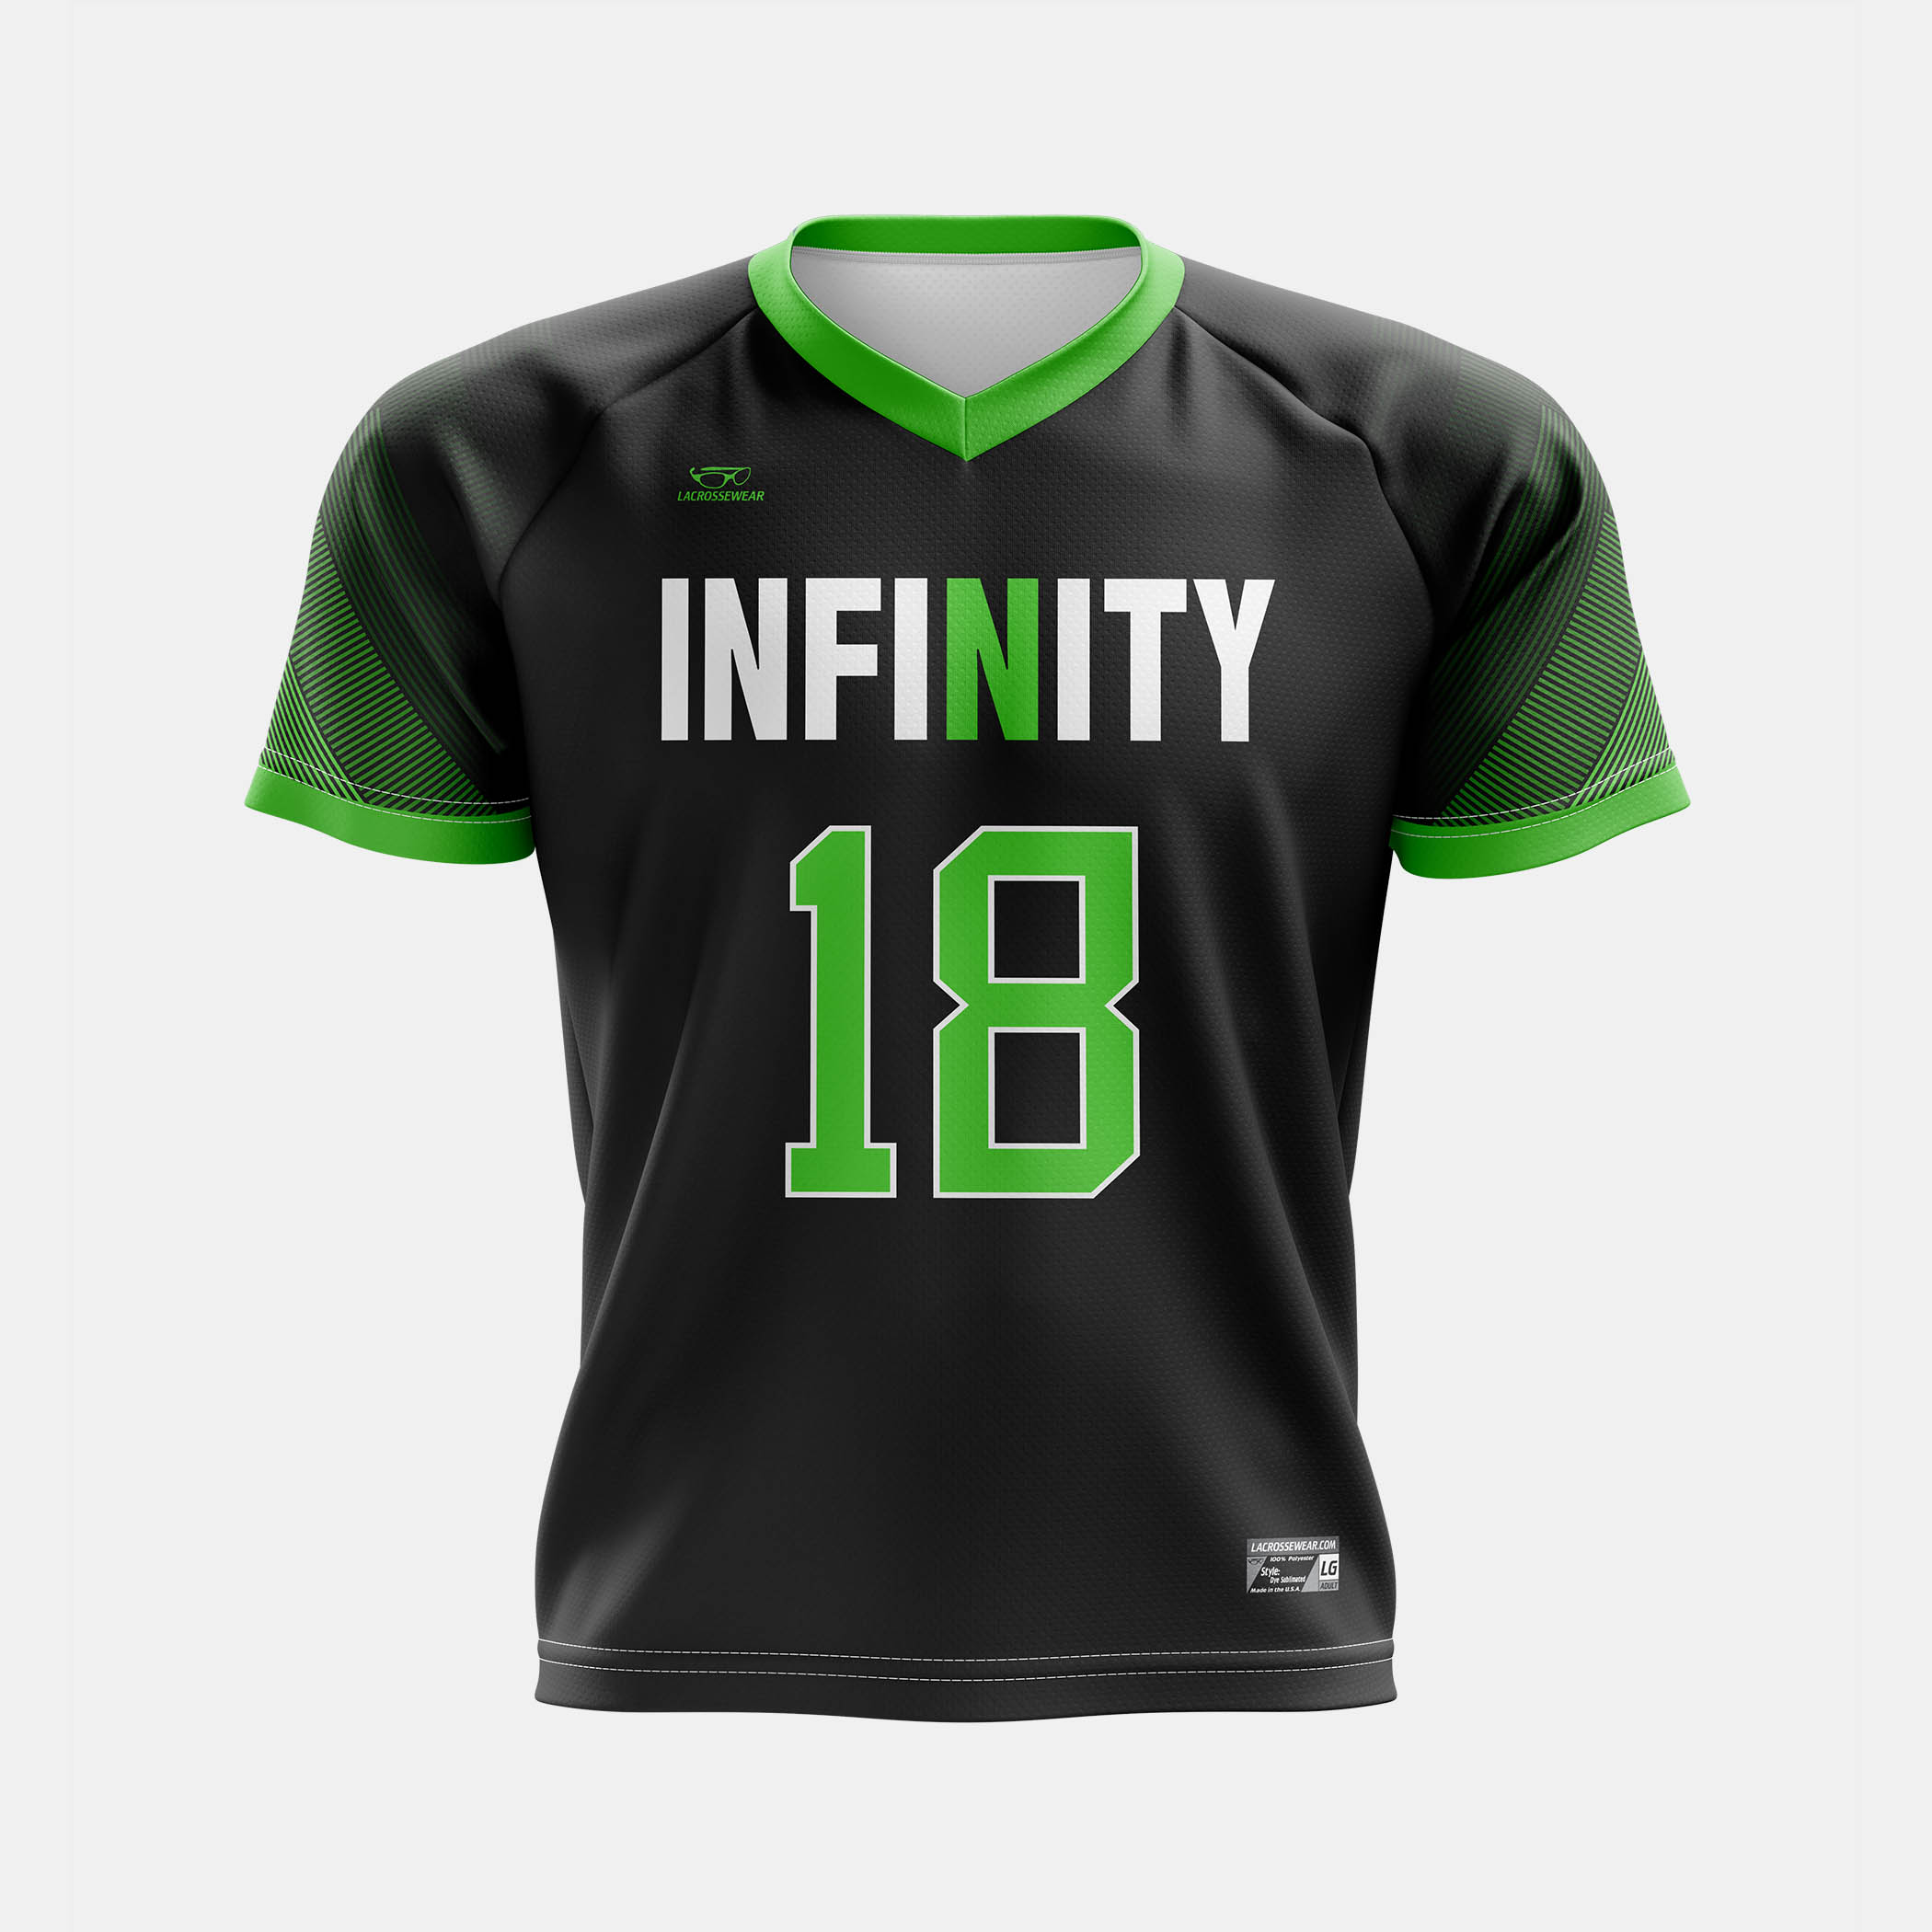 Infinity Jersey Black Front